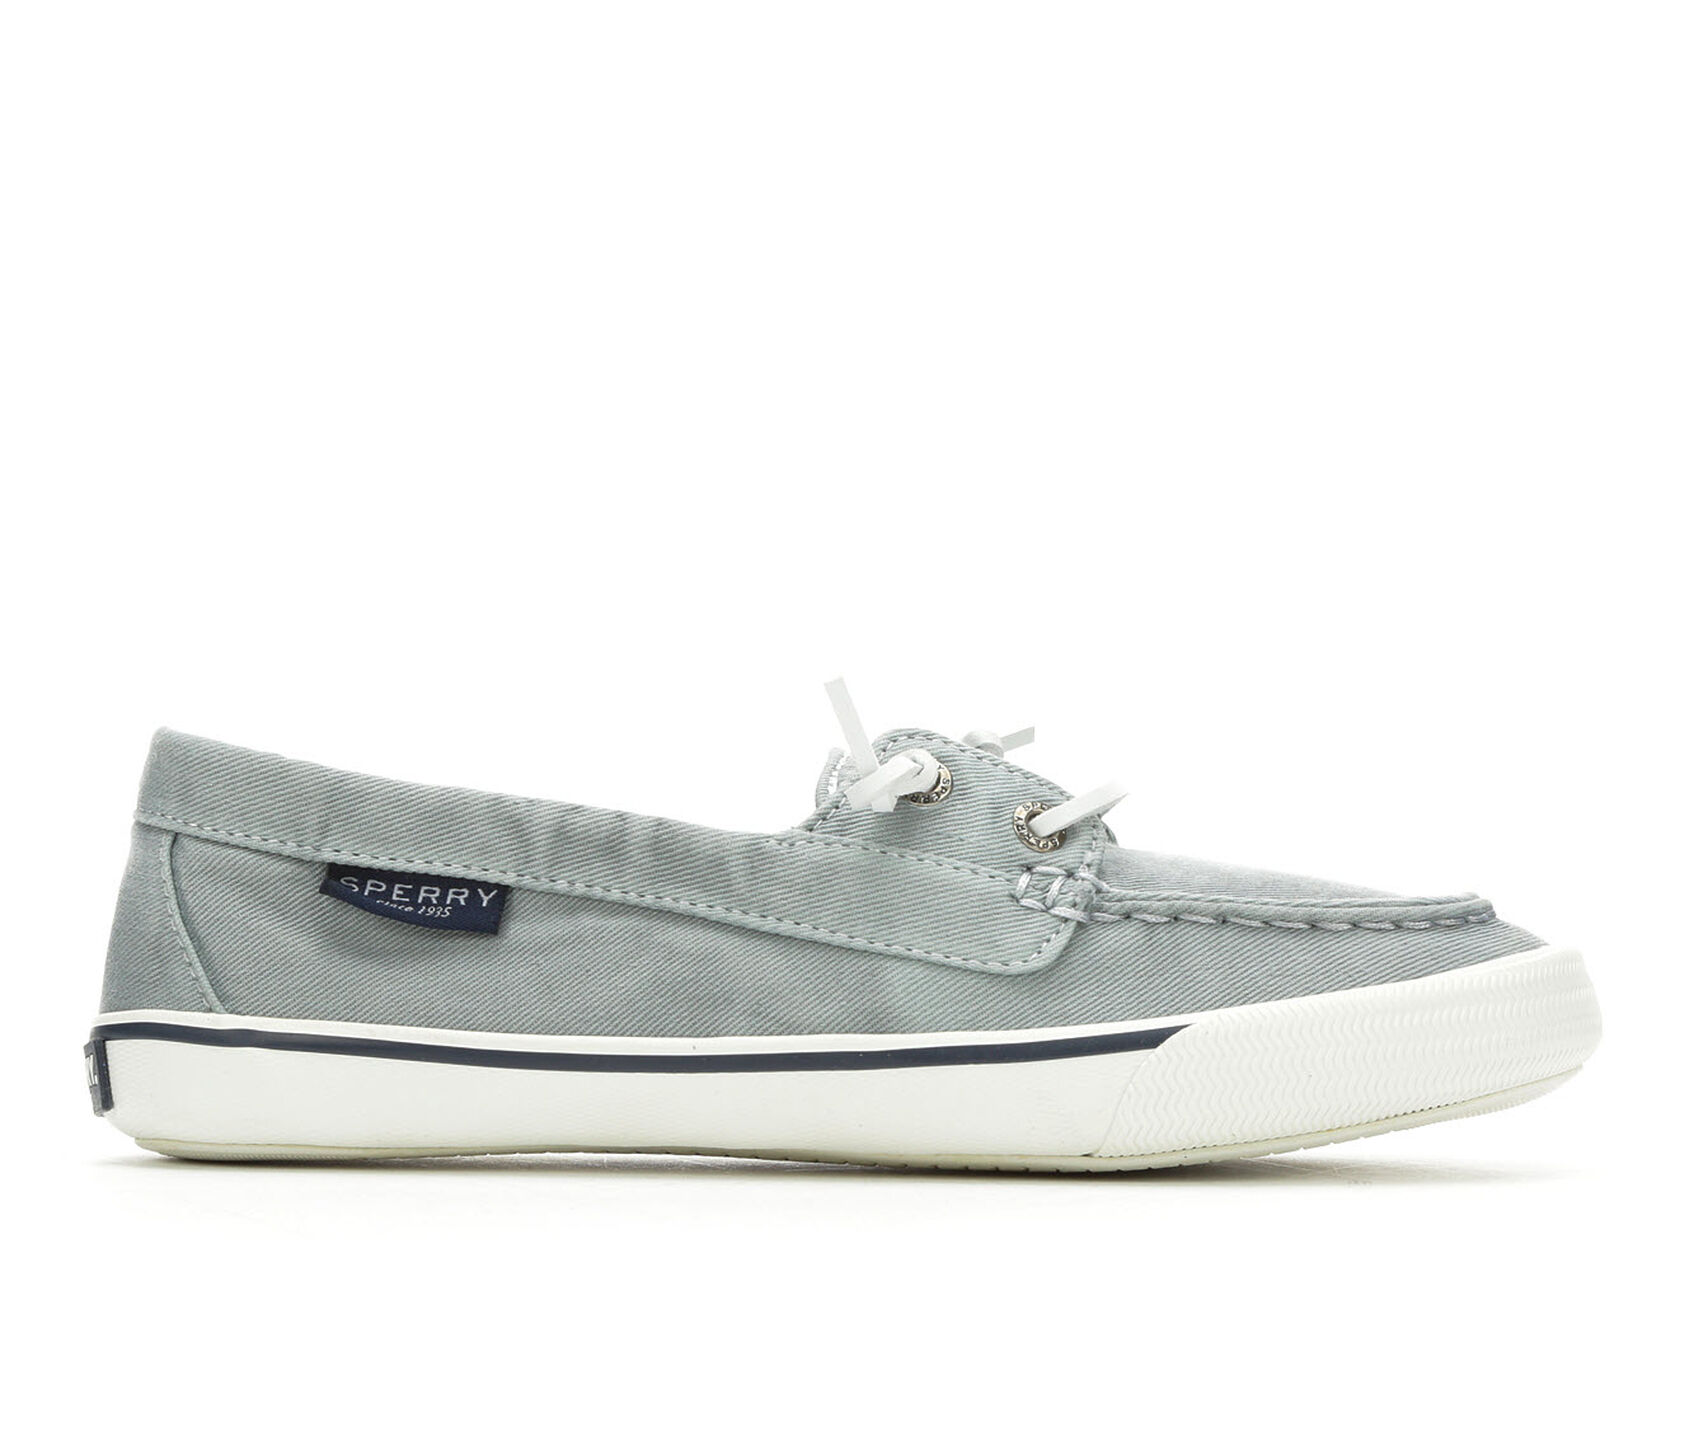 1e895da65426 ... Sperry Lounge Away Washed Canvas Boat Shoes. Previous